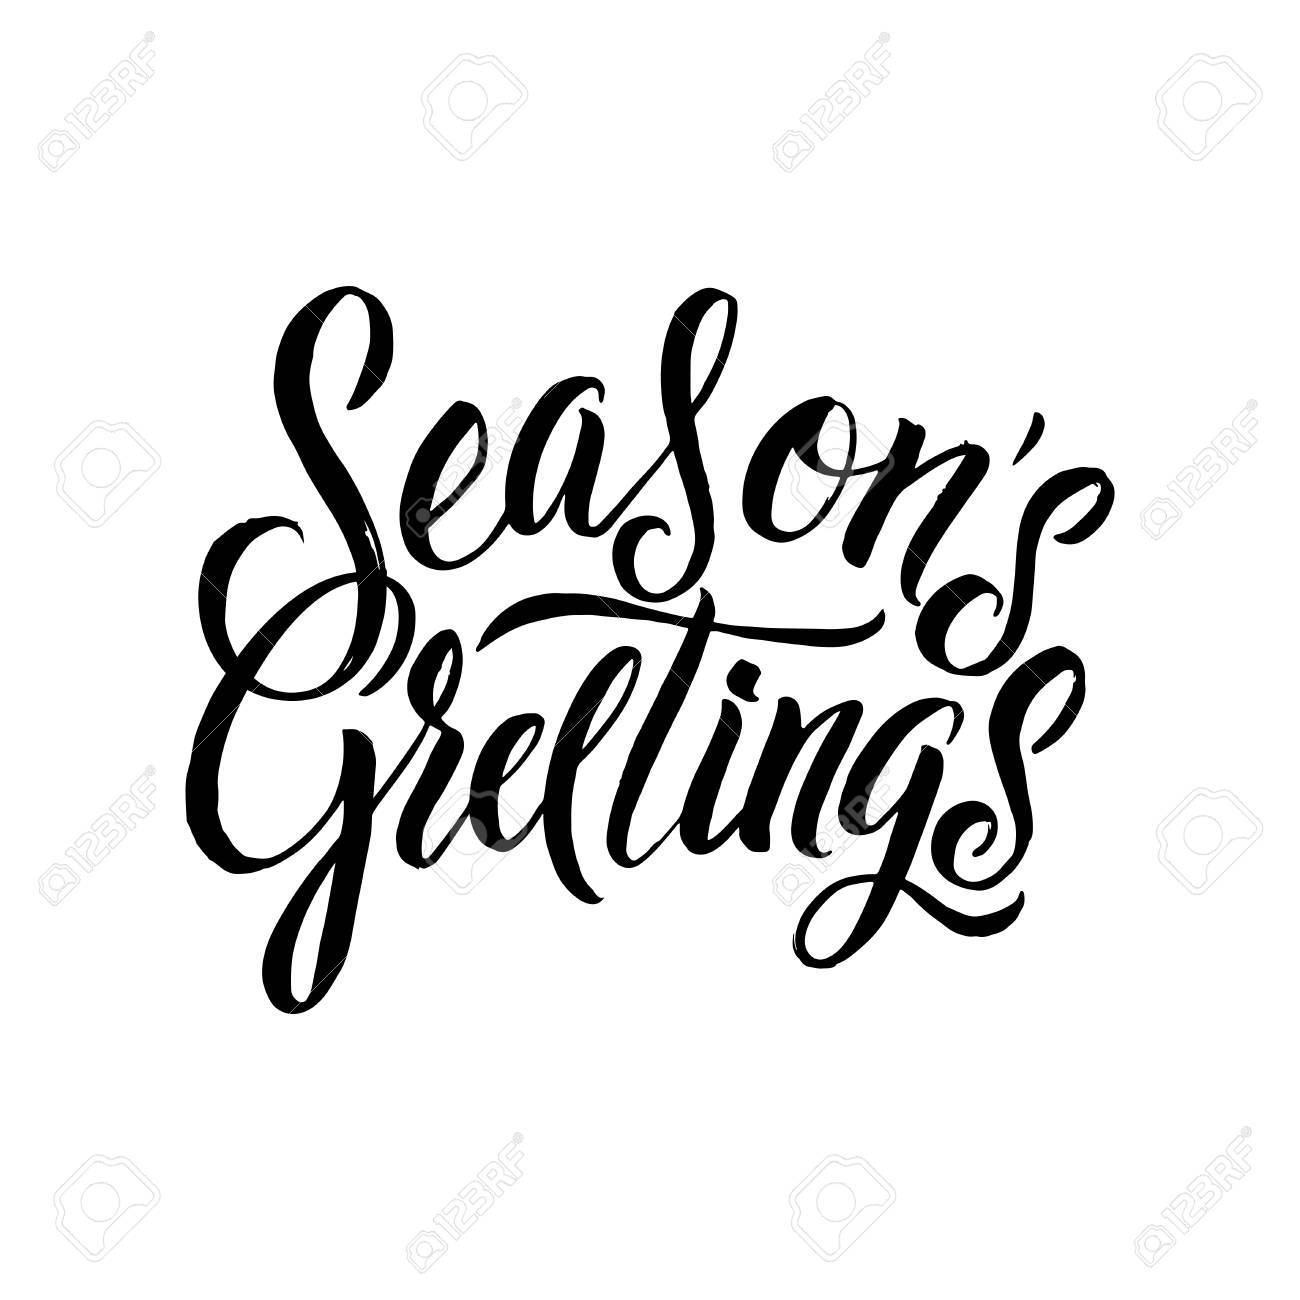 Seasons greetings calligraphy greeting card black typography seasons greetings calligraphy greeting card black typography on white background stock vector 68697934 m4hsunfo